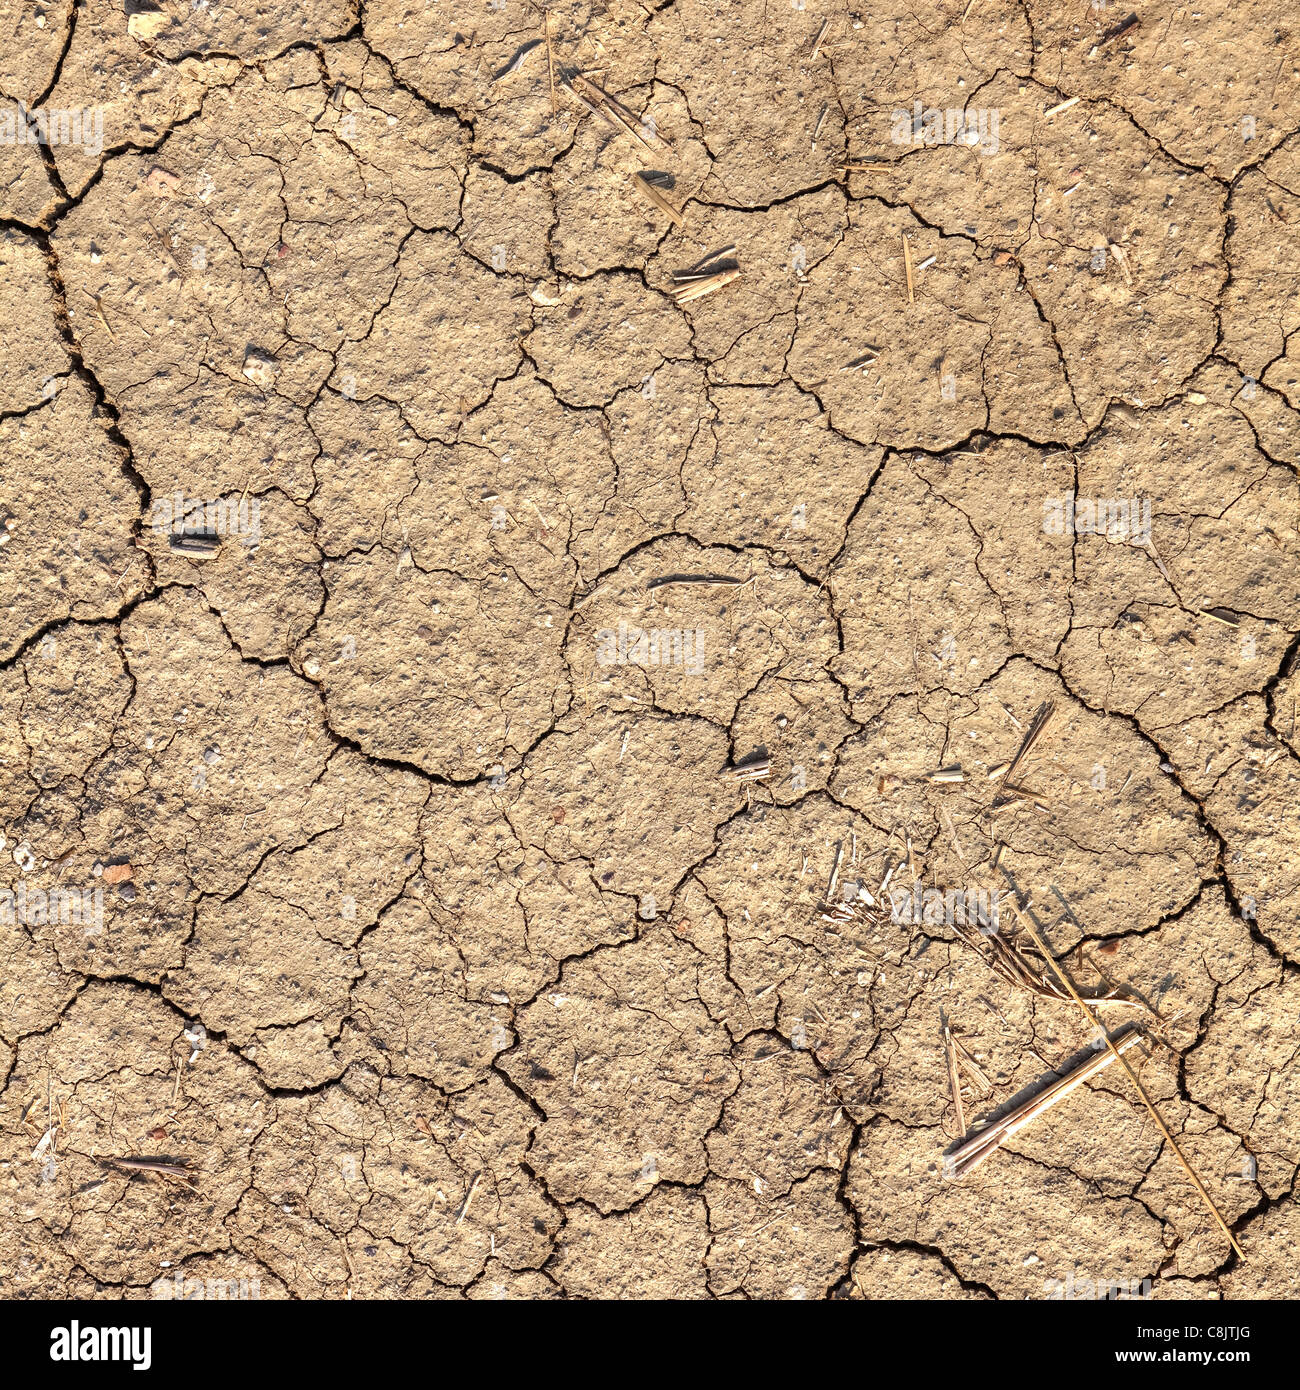 the dry soil in Tuscany after a long summer without rain - Stock Image